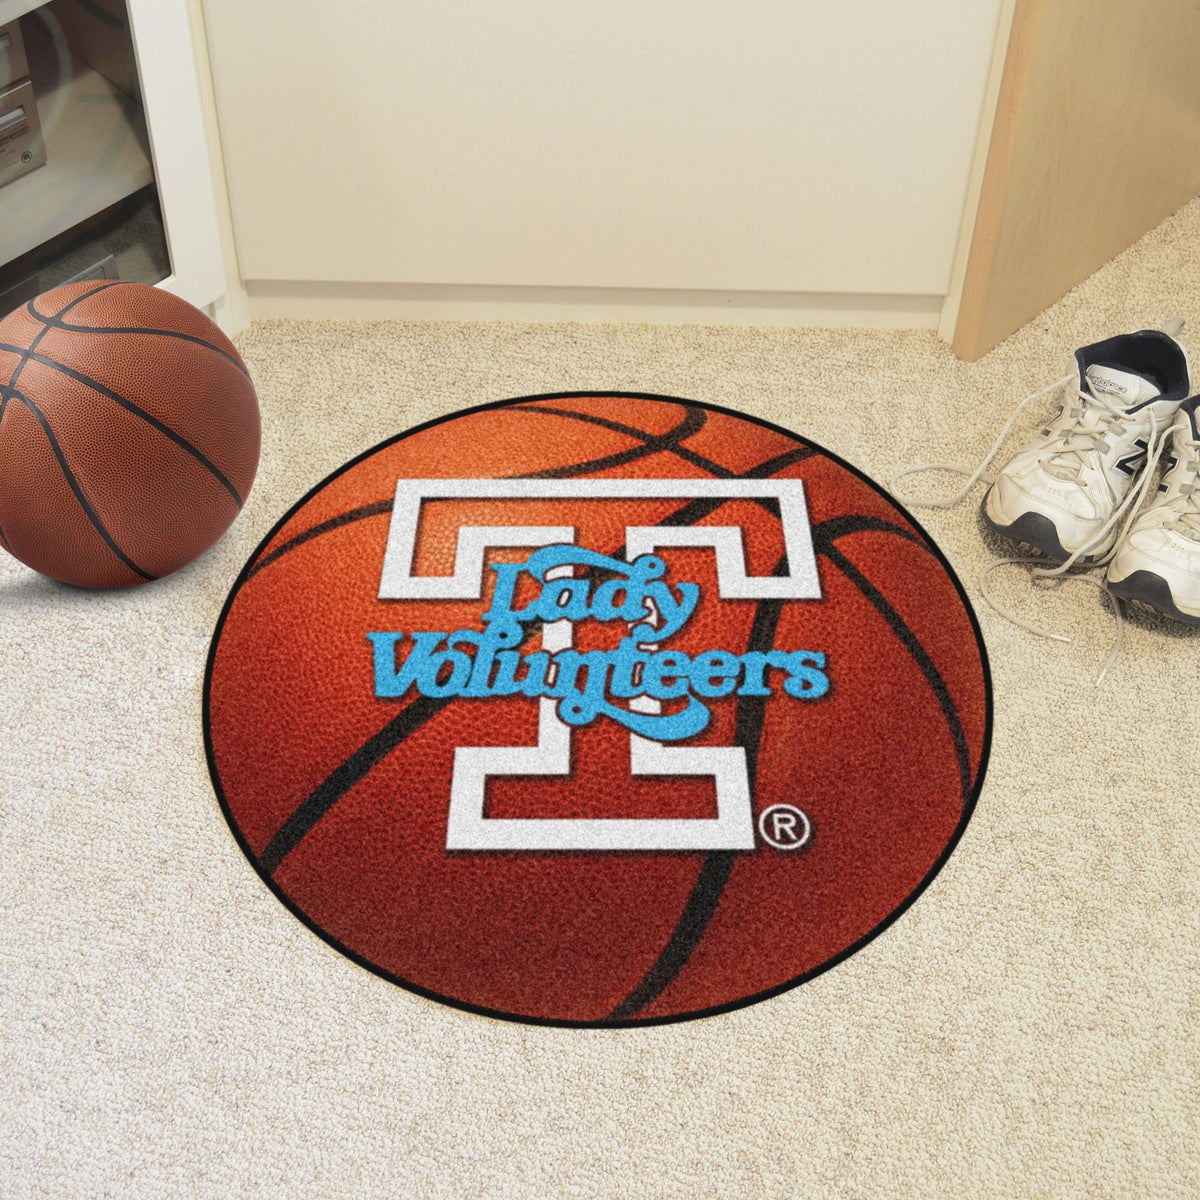 Collegiate - Basketball Mat: T - Z Collegiate Mats, Rectangular Mats, Basketball Mat, Collegiate, Home Fan Mats Tennessee 2